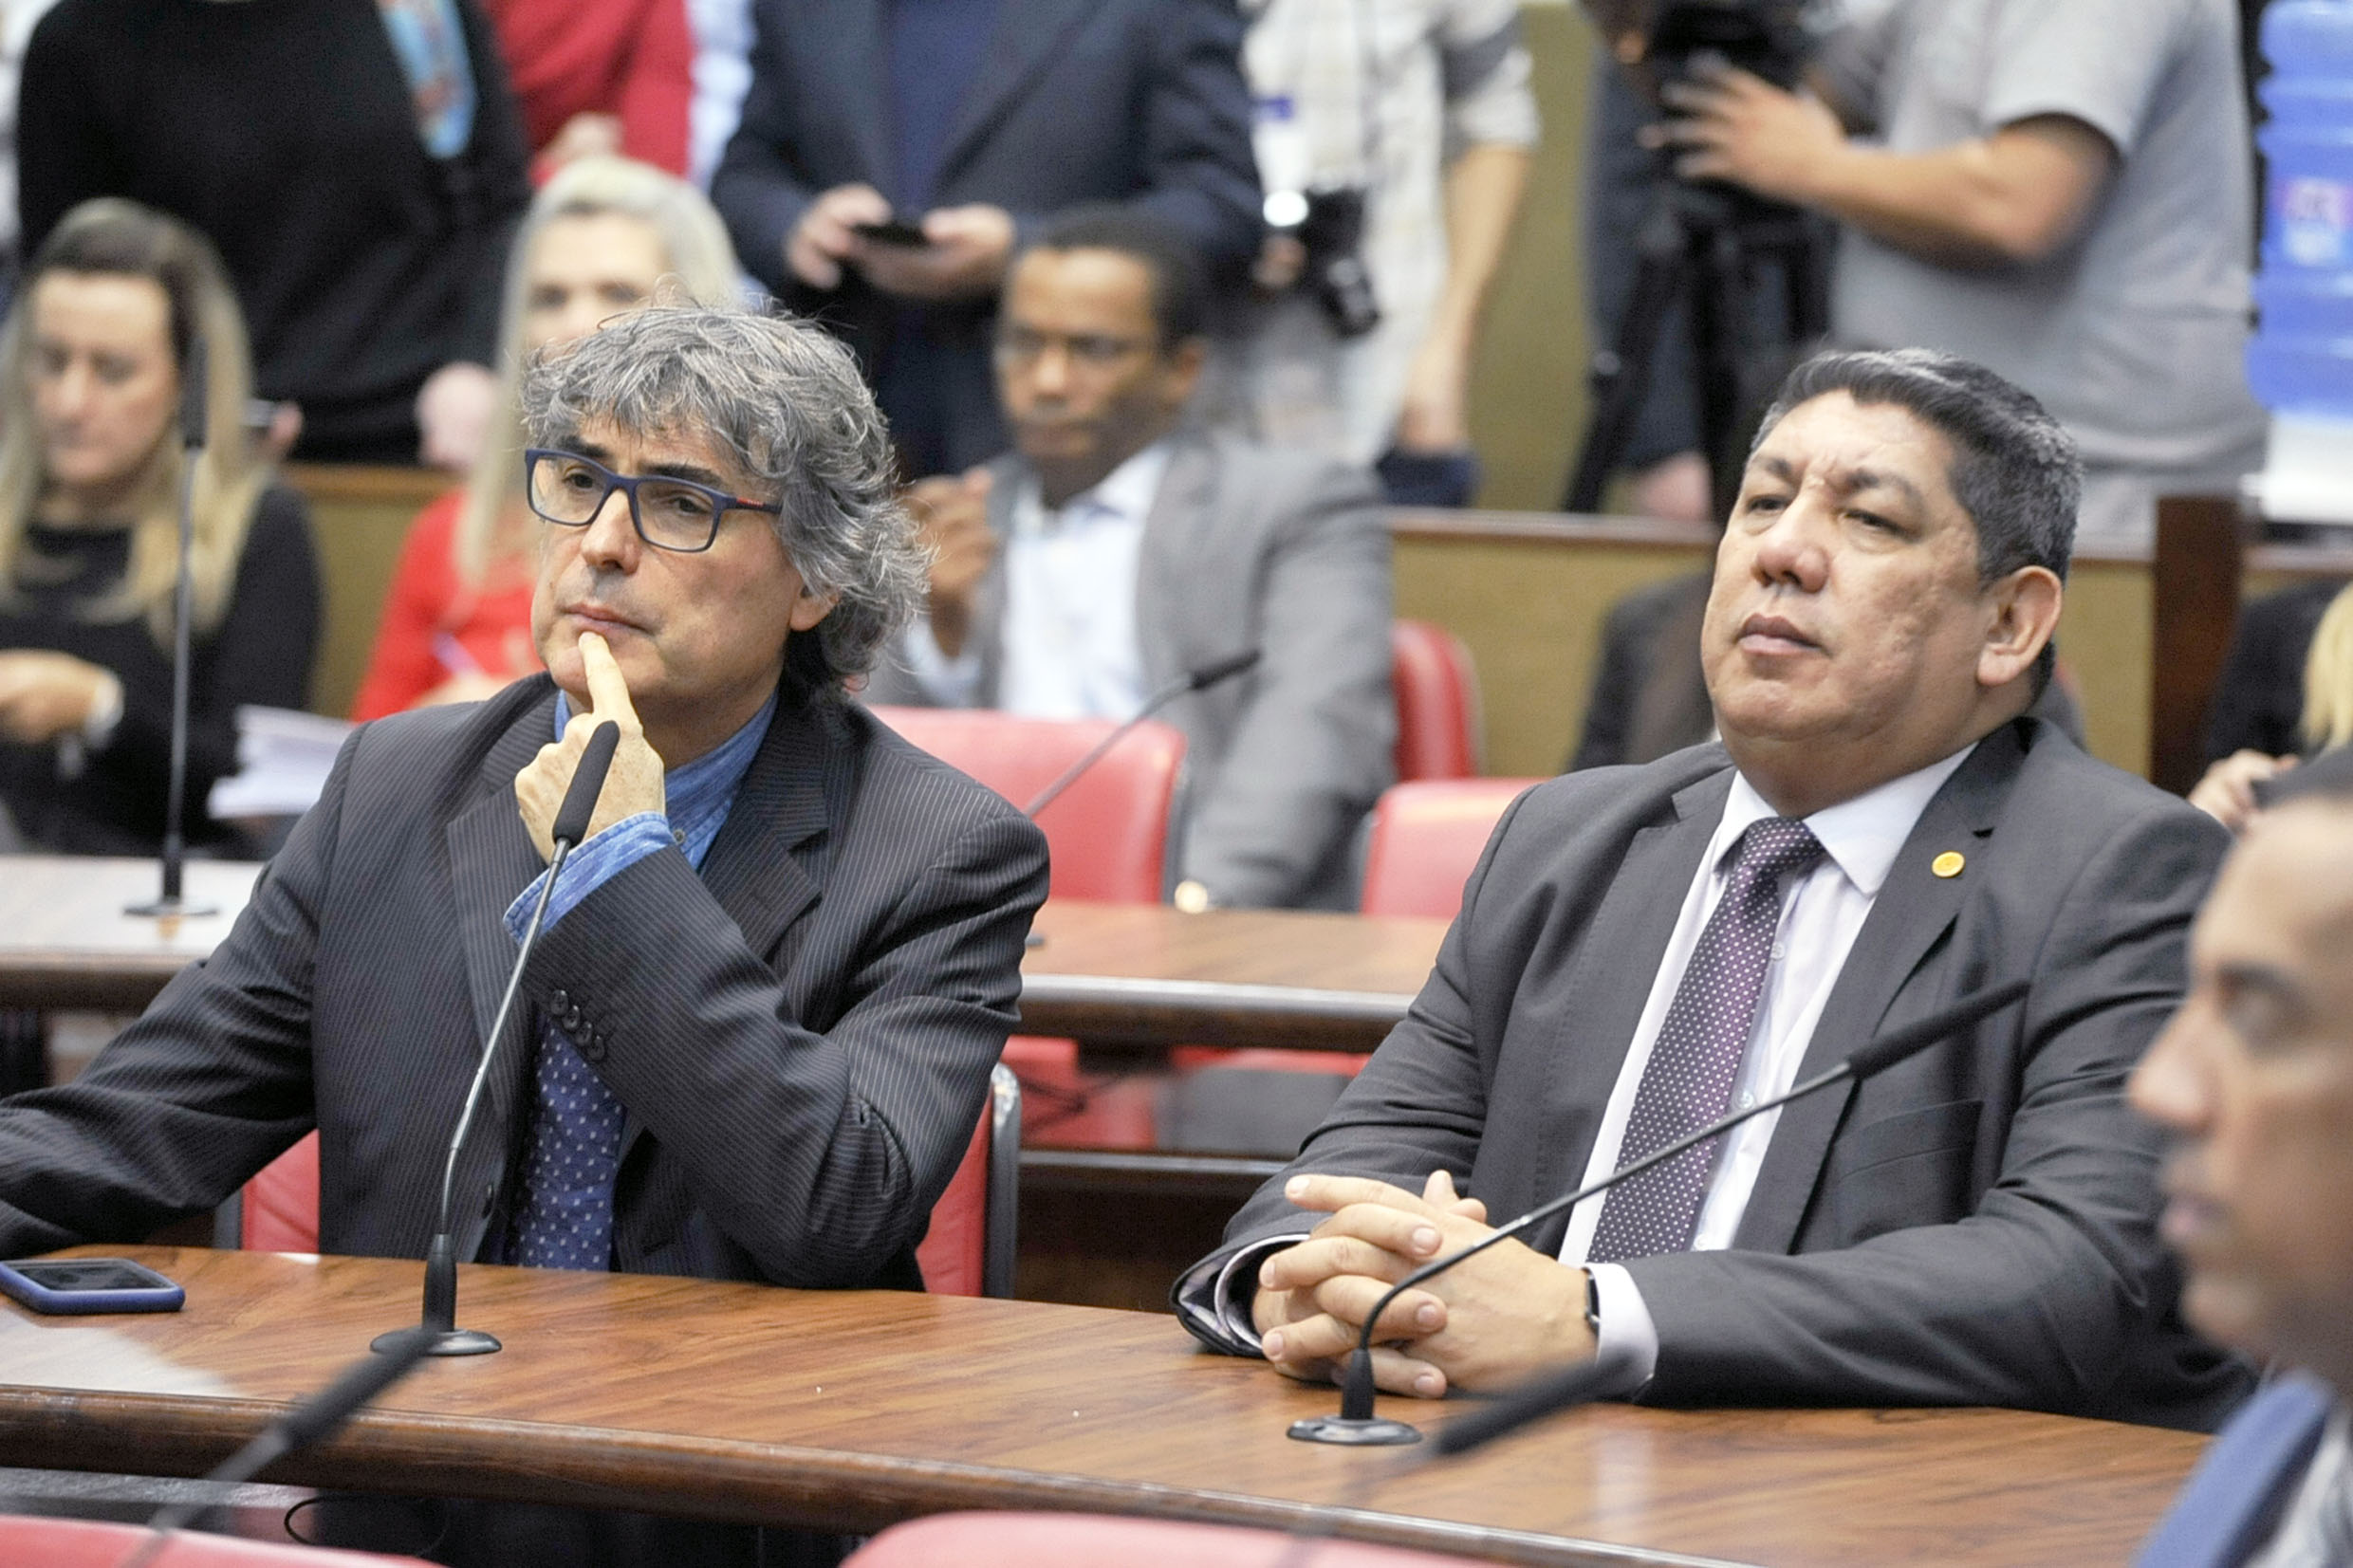 Carlos Giannazi e Adalberto Freitas<a style='float:right' href='https://www3.al.sp.gov.br/repositorio/noticia/N-08-2019/fg237600.jpg' target=_blank><img src='/_img/material-file-download-white.png' width='14px' alt='Clique para baixar a imagem'></a>